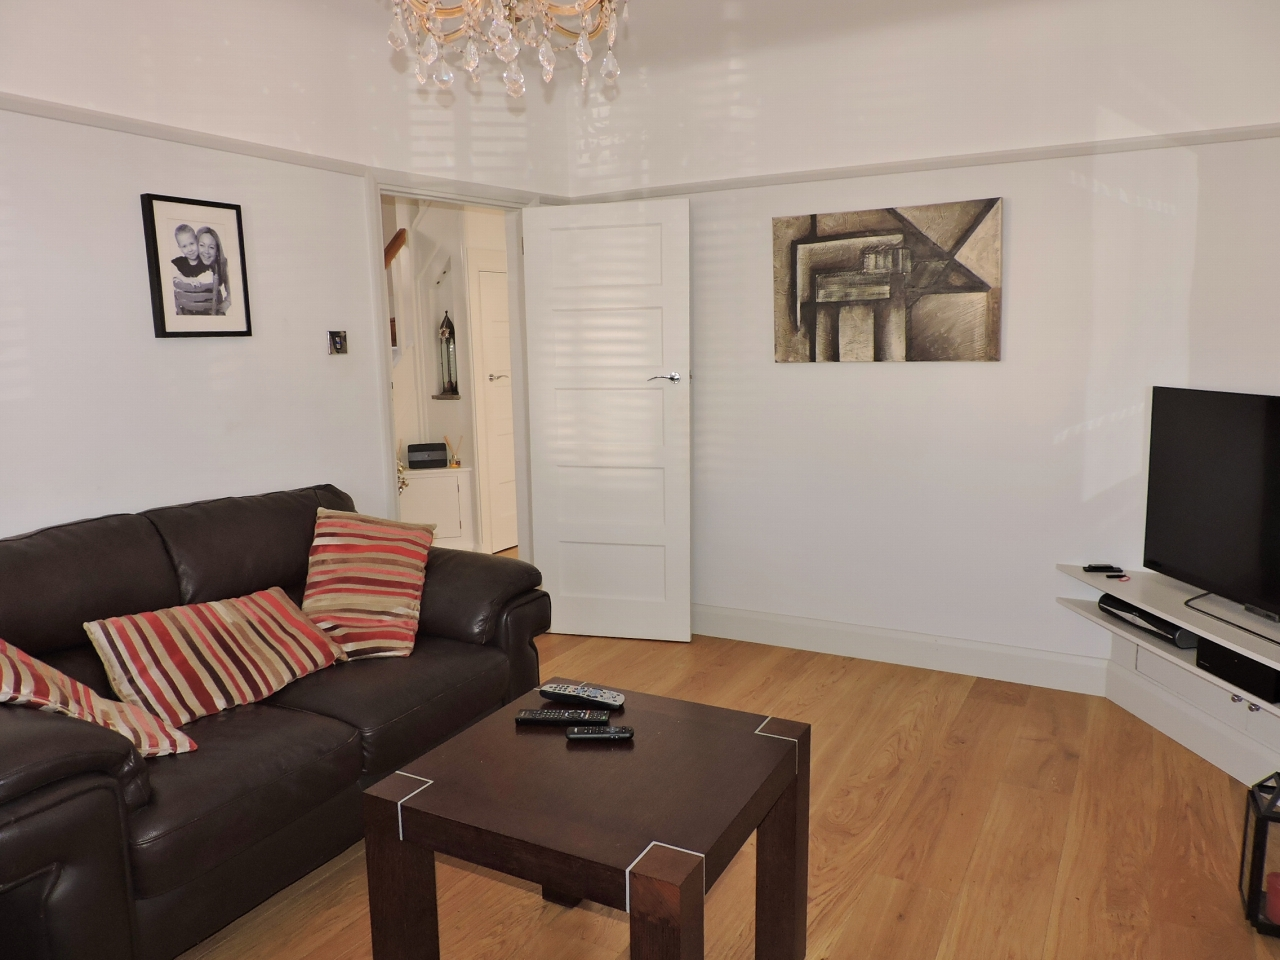 3 bedroom semi-detached house SSTC in New Malden - Photograph 4